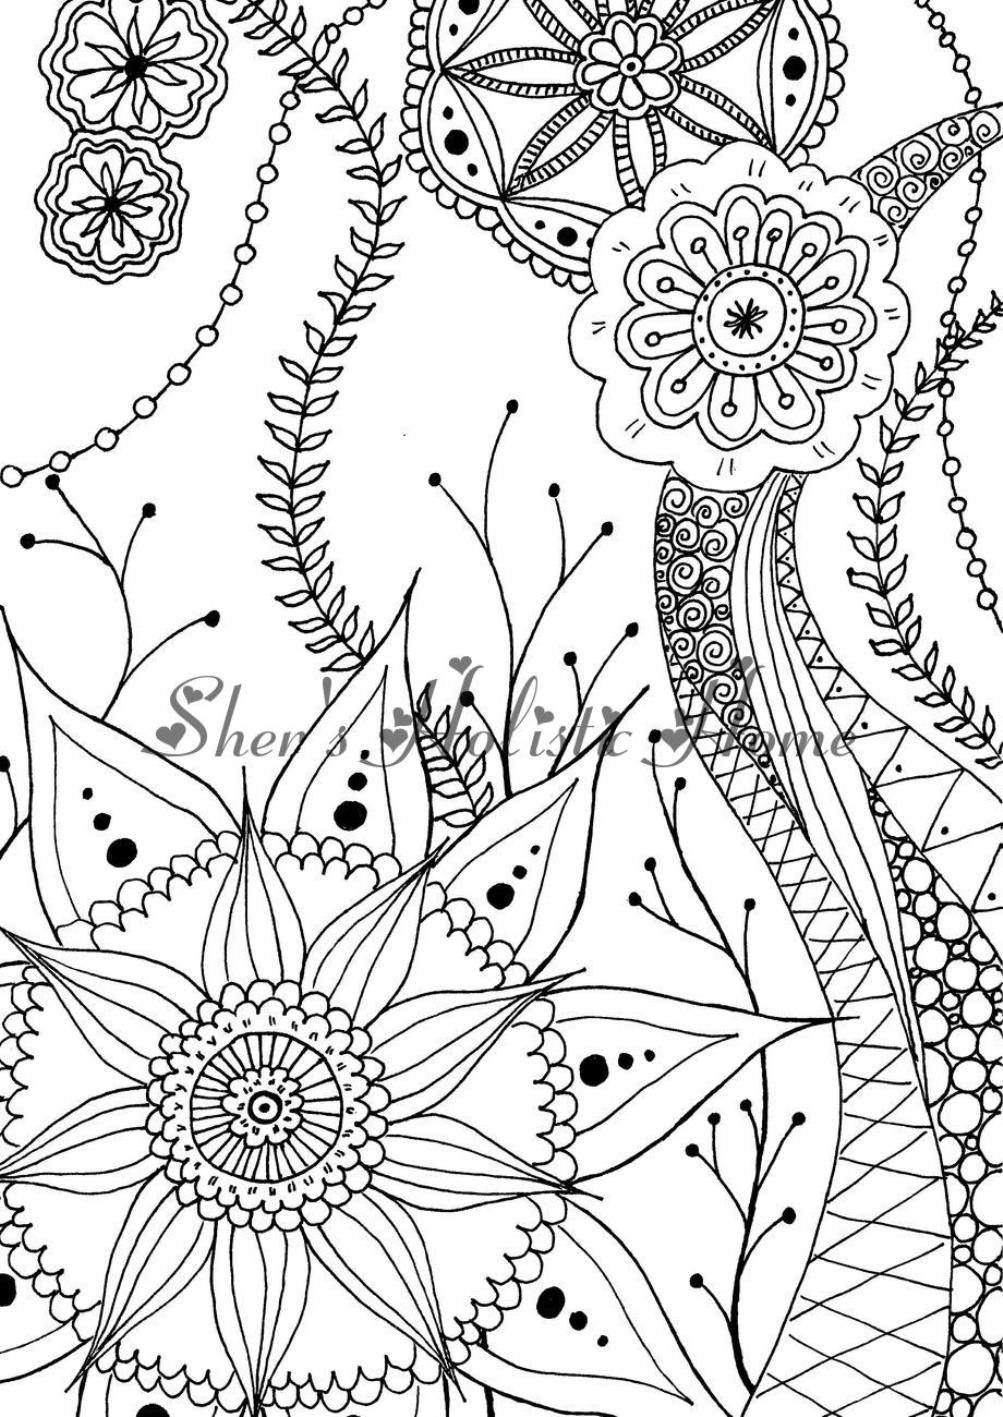 Mandala Coloring Page Kids Coloring Page Flower Coloring Page